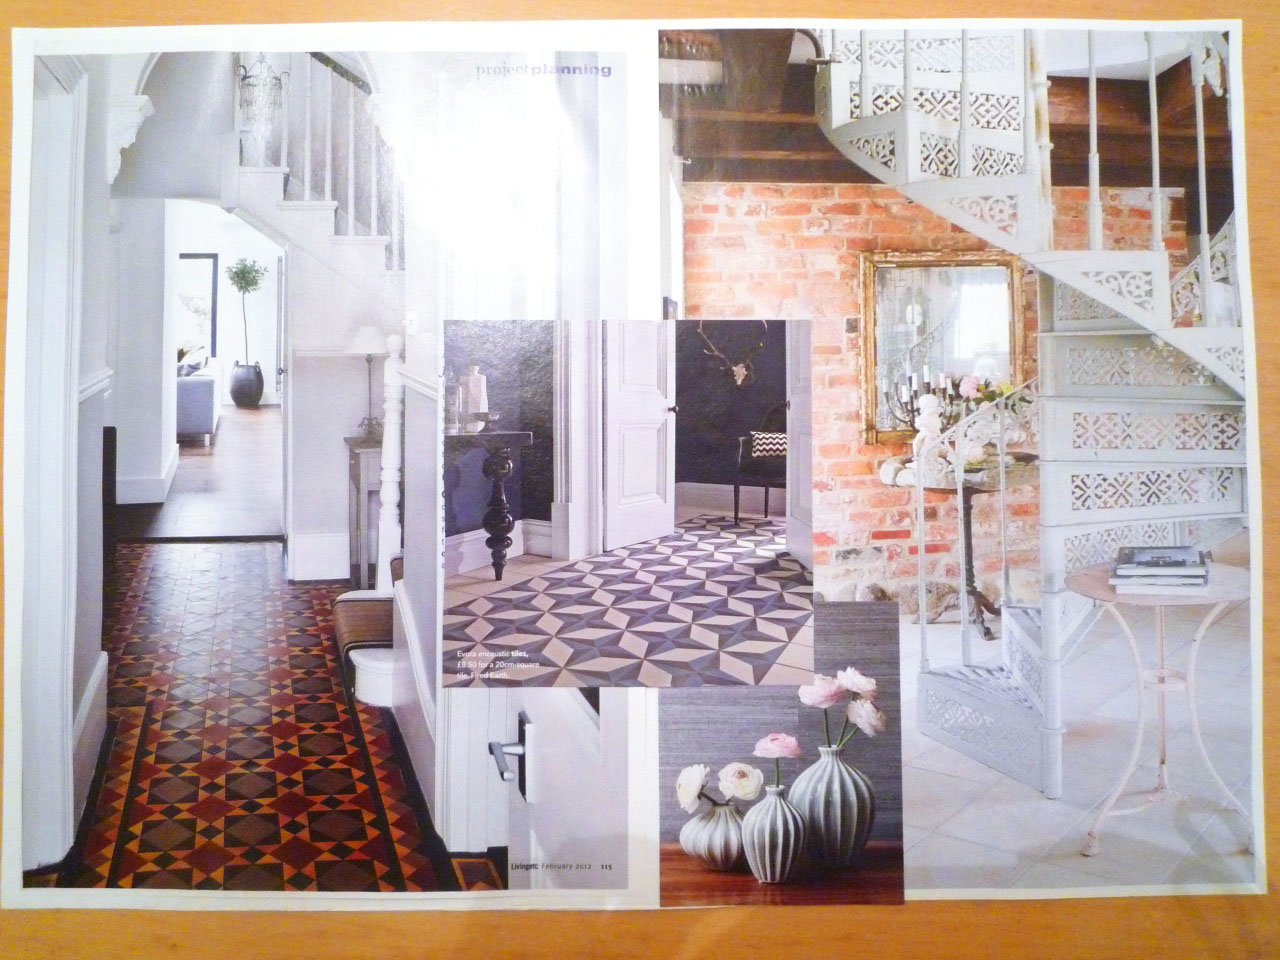 13 15 guildhall road mood boards 2 interior designer antonia lowe Bathroom design leamington spa